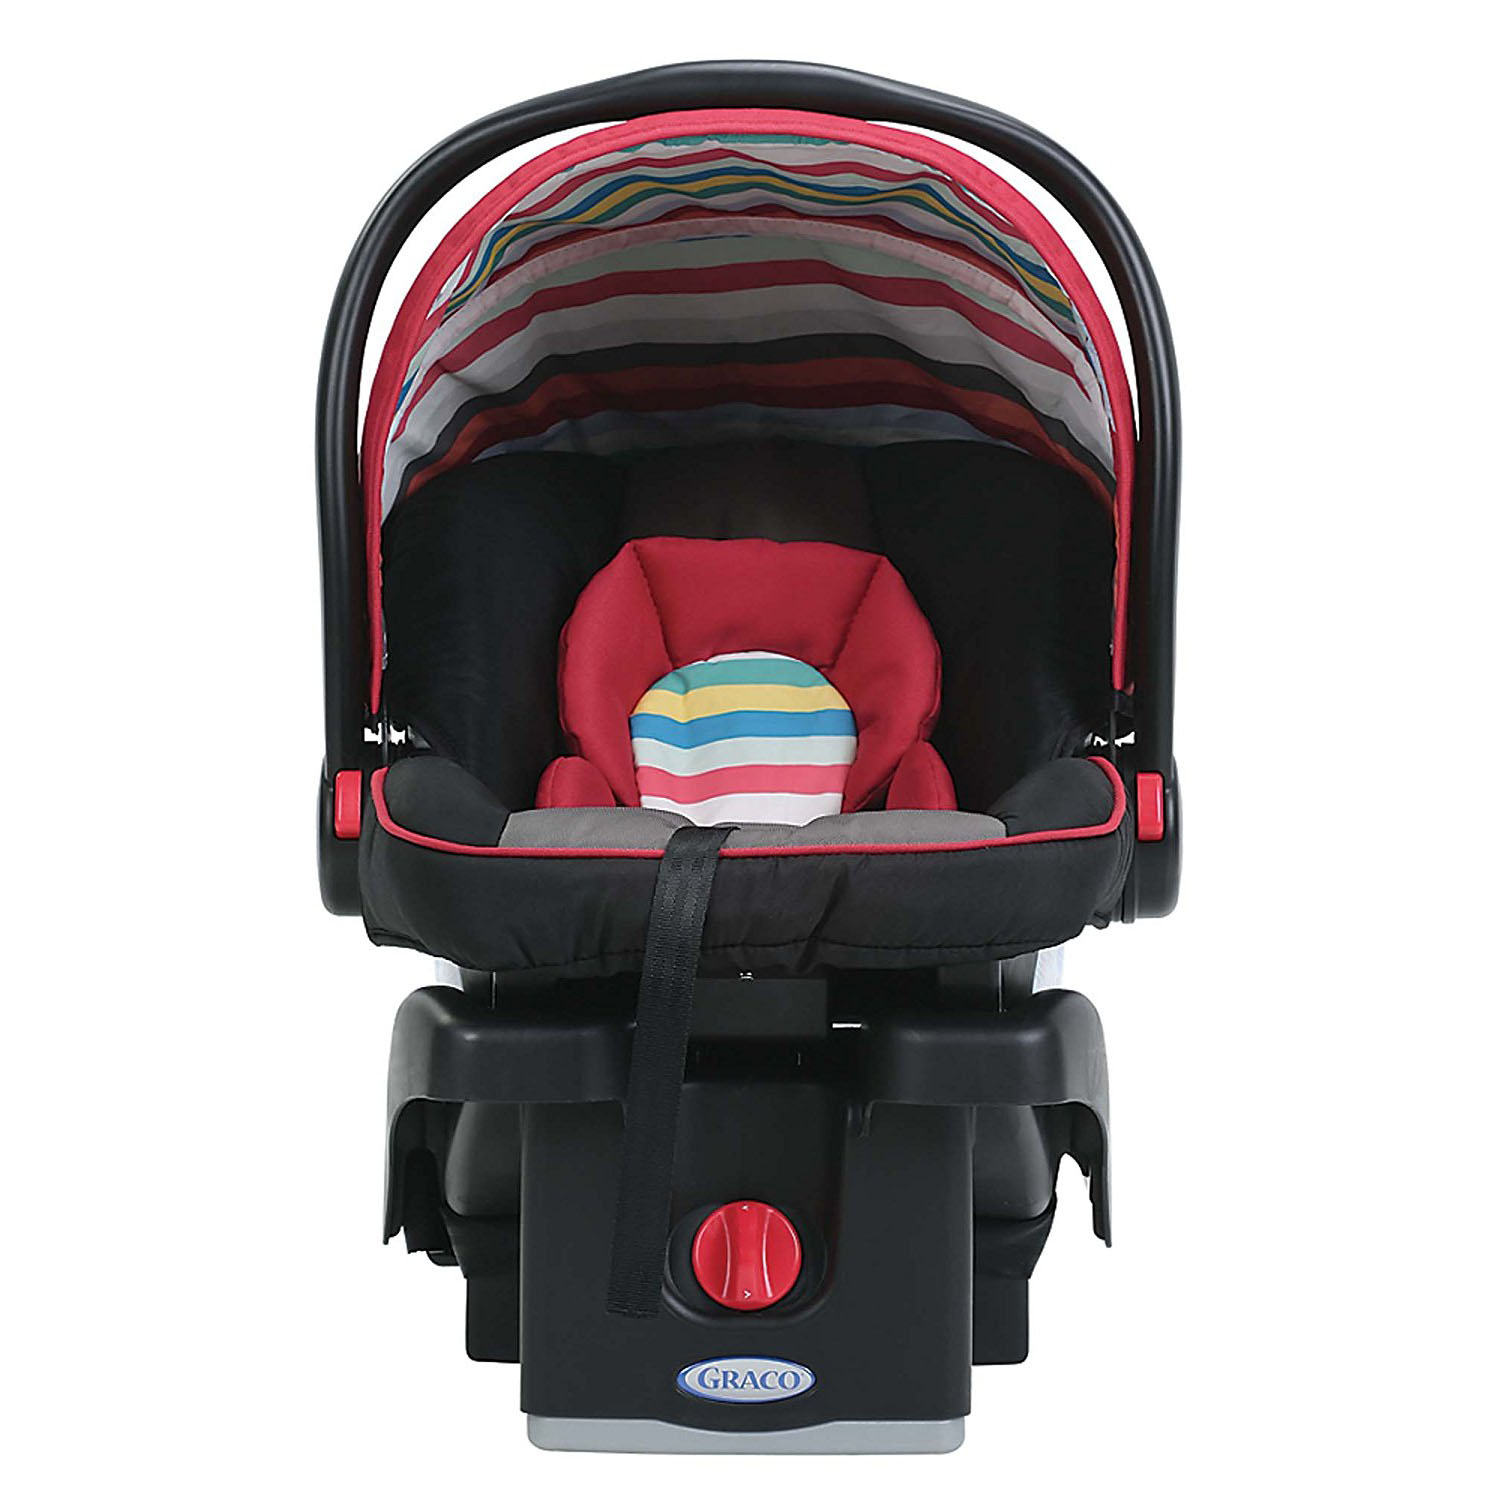 Graco Travel System Modes Duo Stroller & SnugRide Click